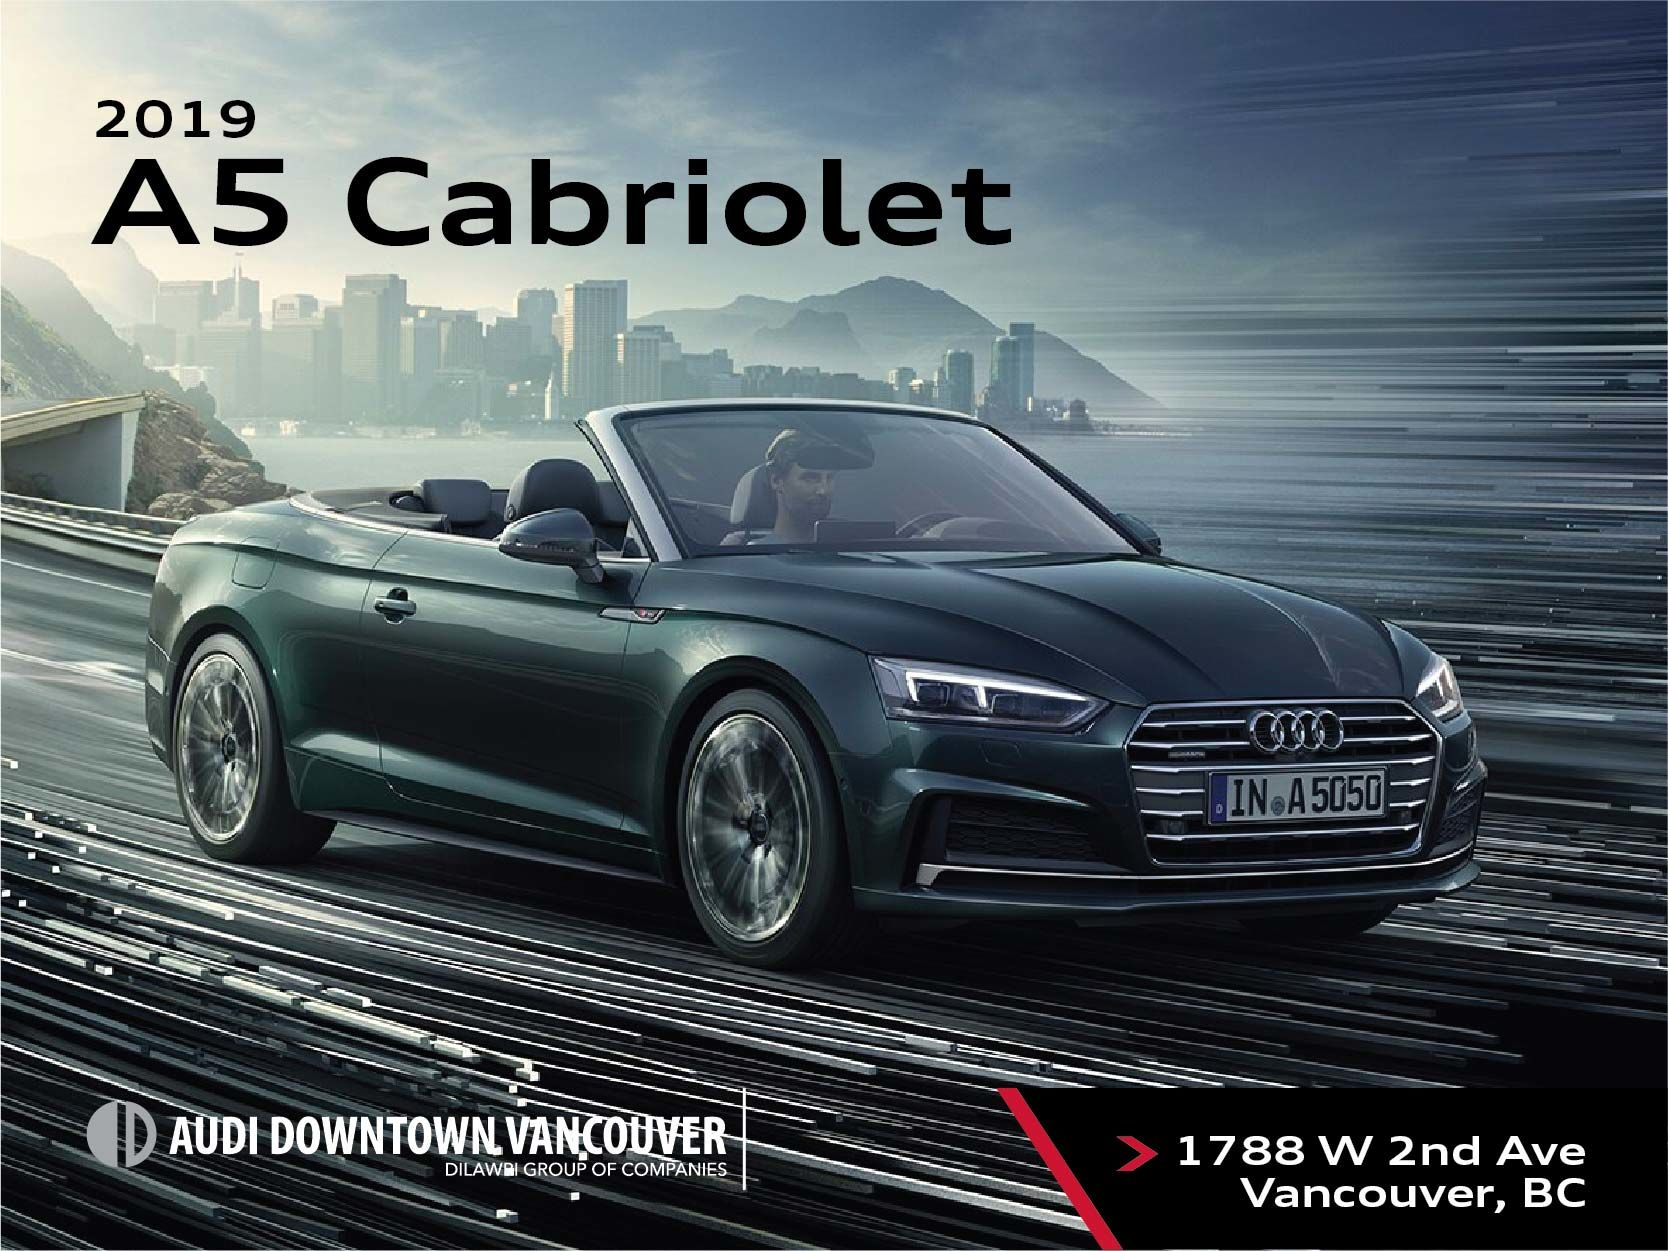 The 2019 Audi A5 Cabriolet